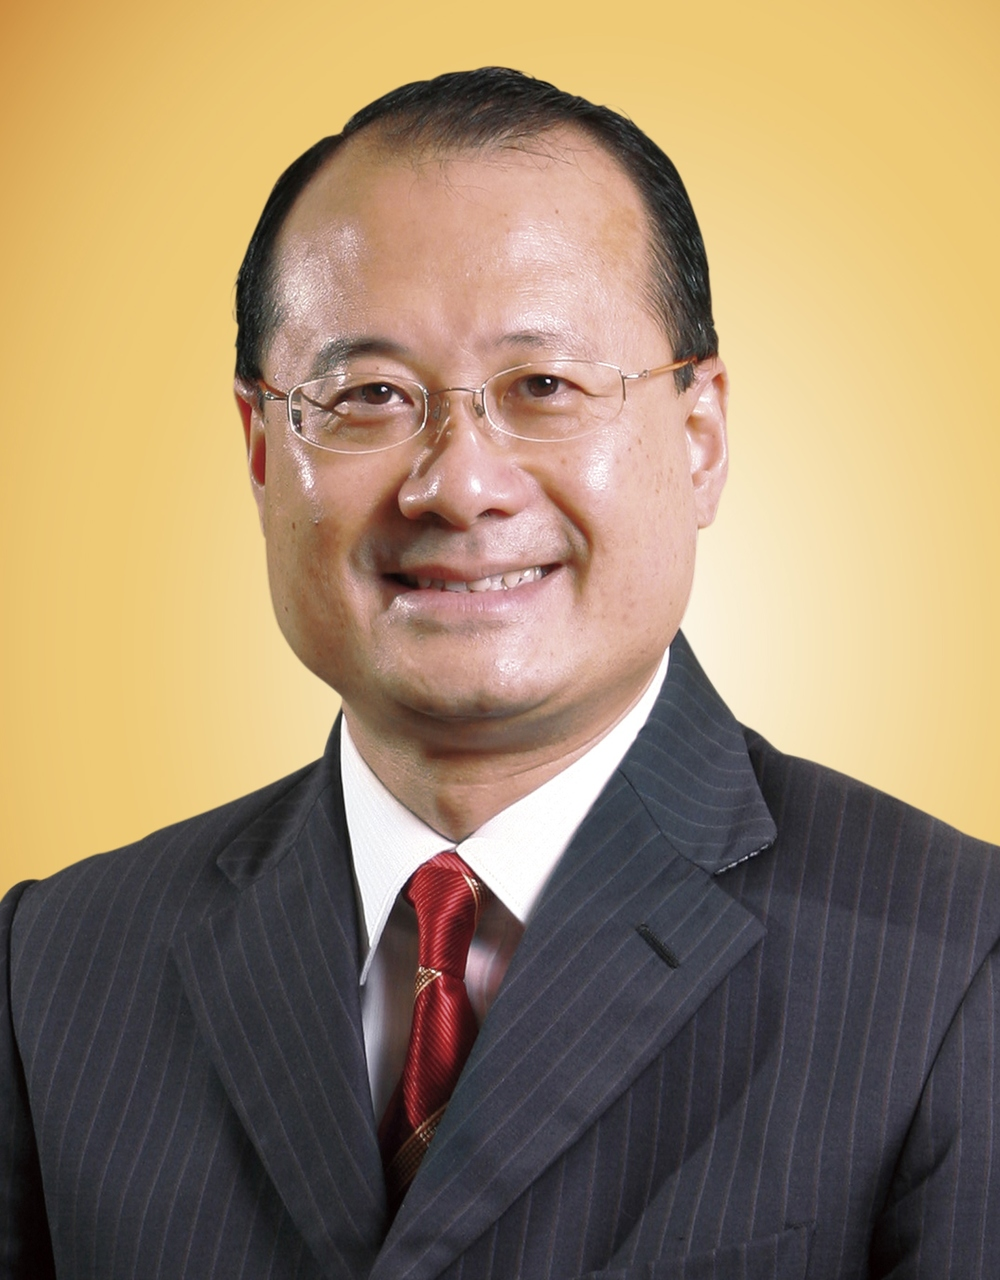 Dr Jonathan Choi, Chairman of Sunwah Group and Sunwah Foundation